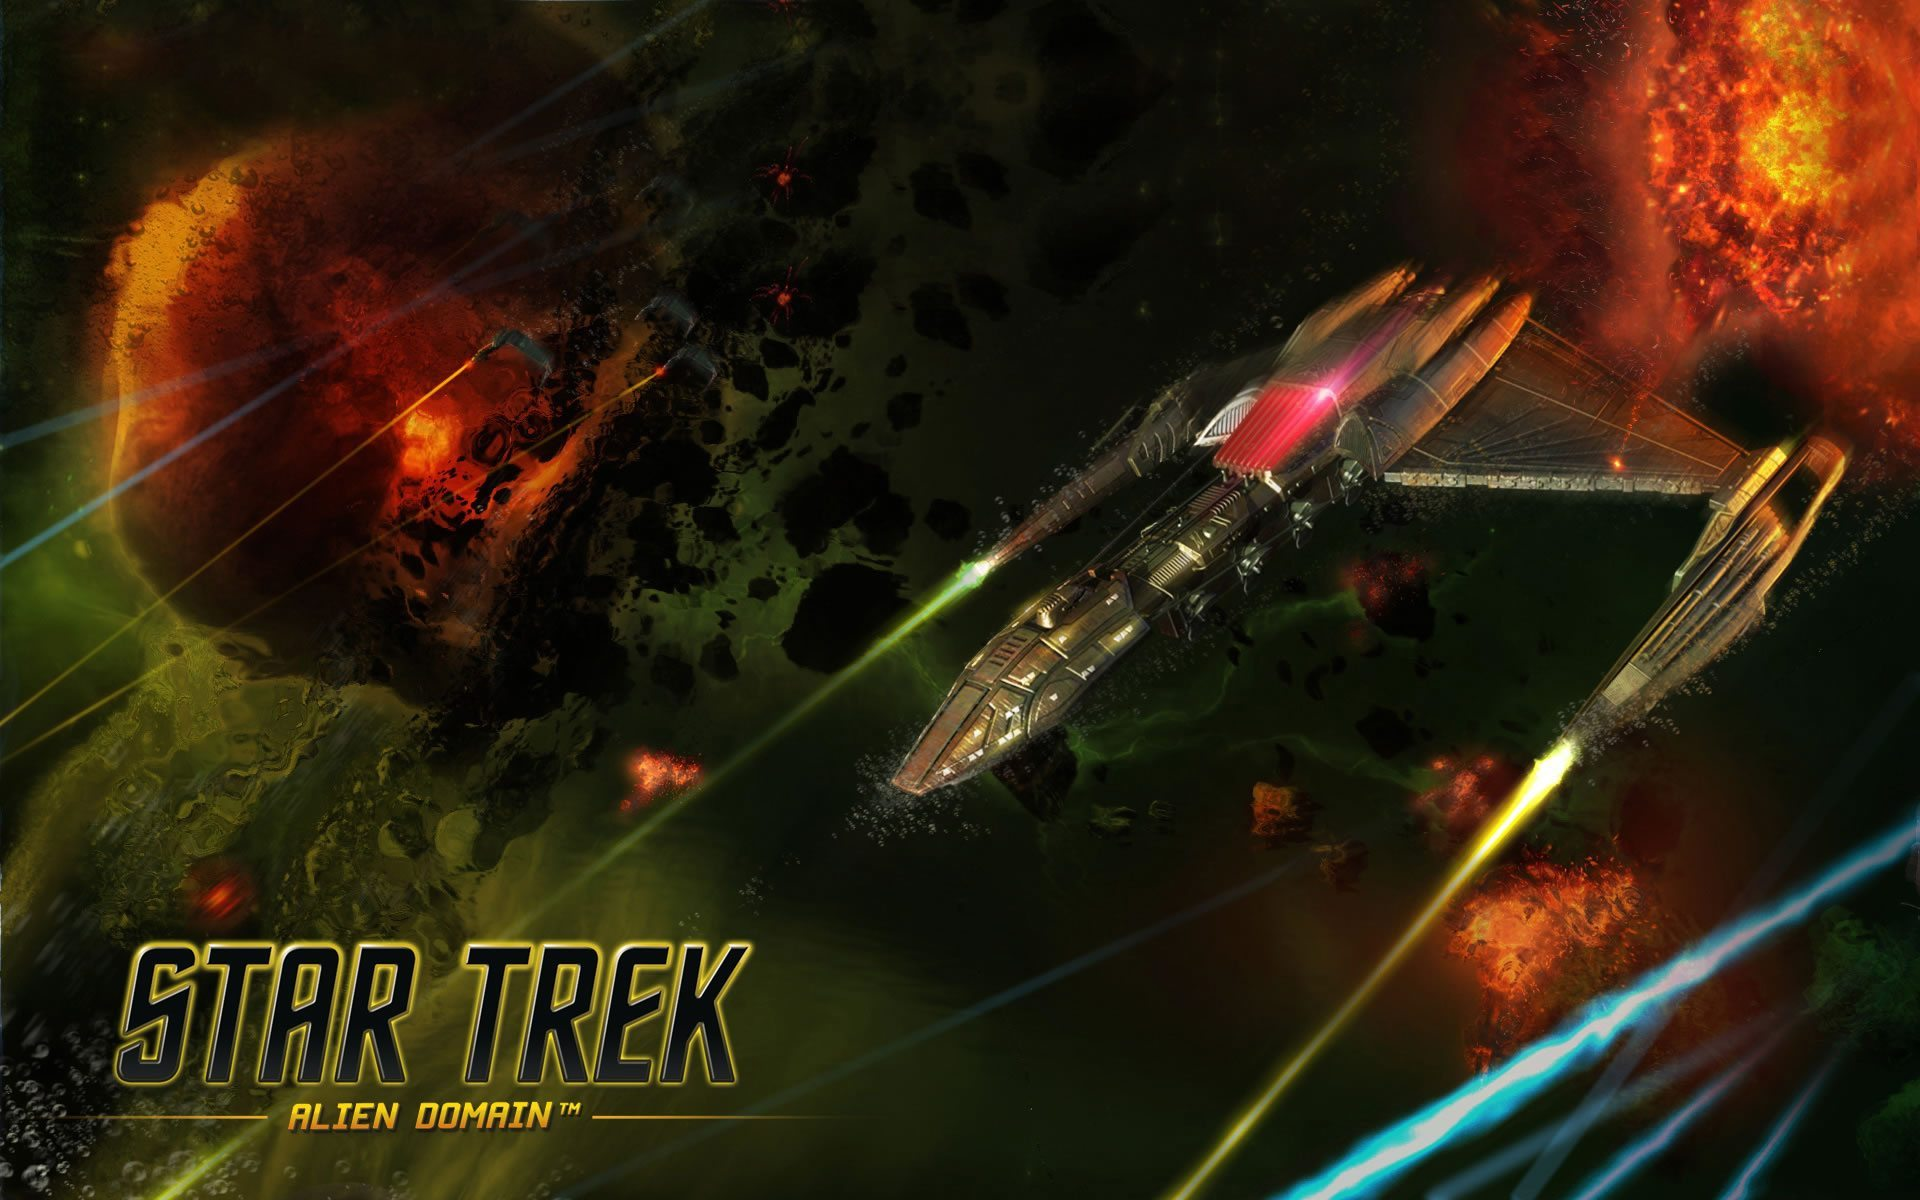 Star-Trek-Alien-Domain-wallpaper-01